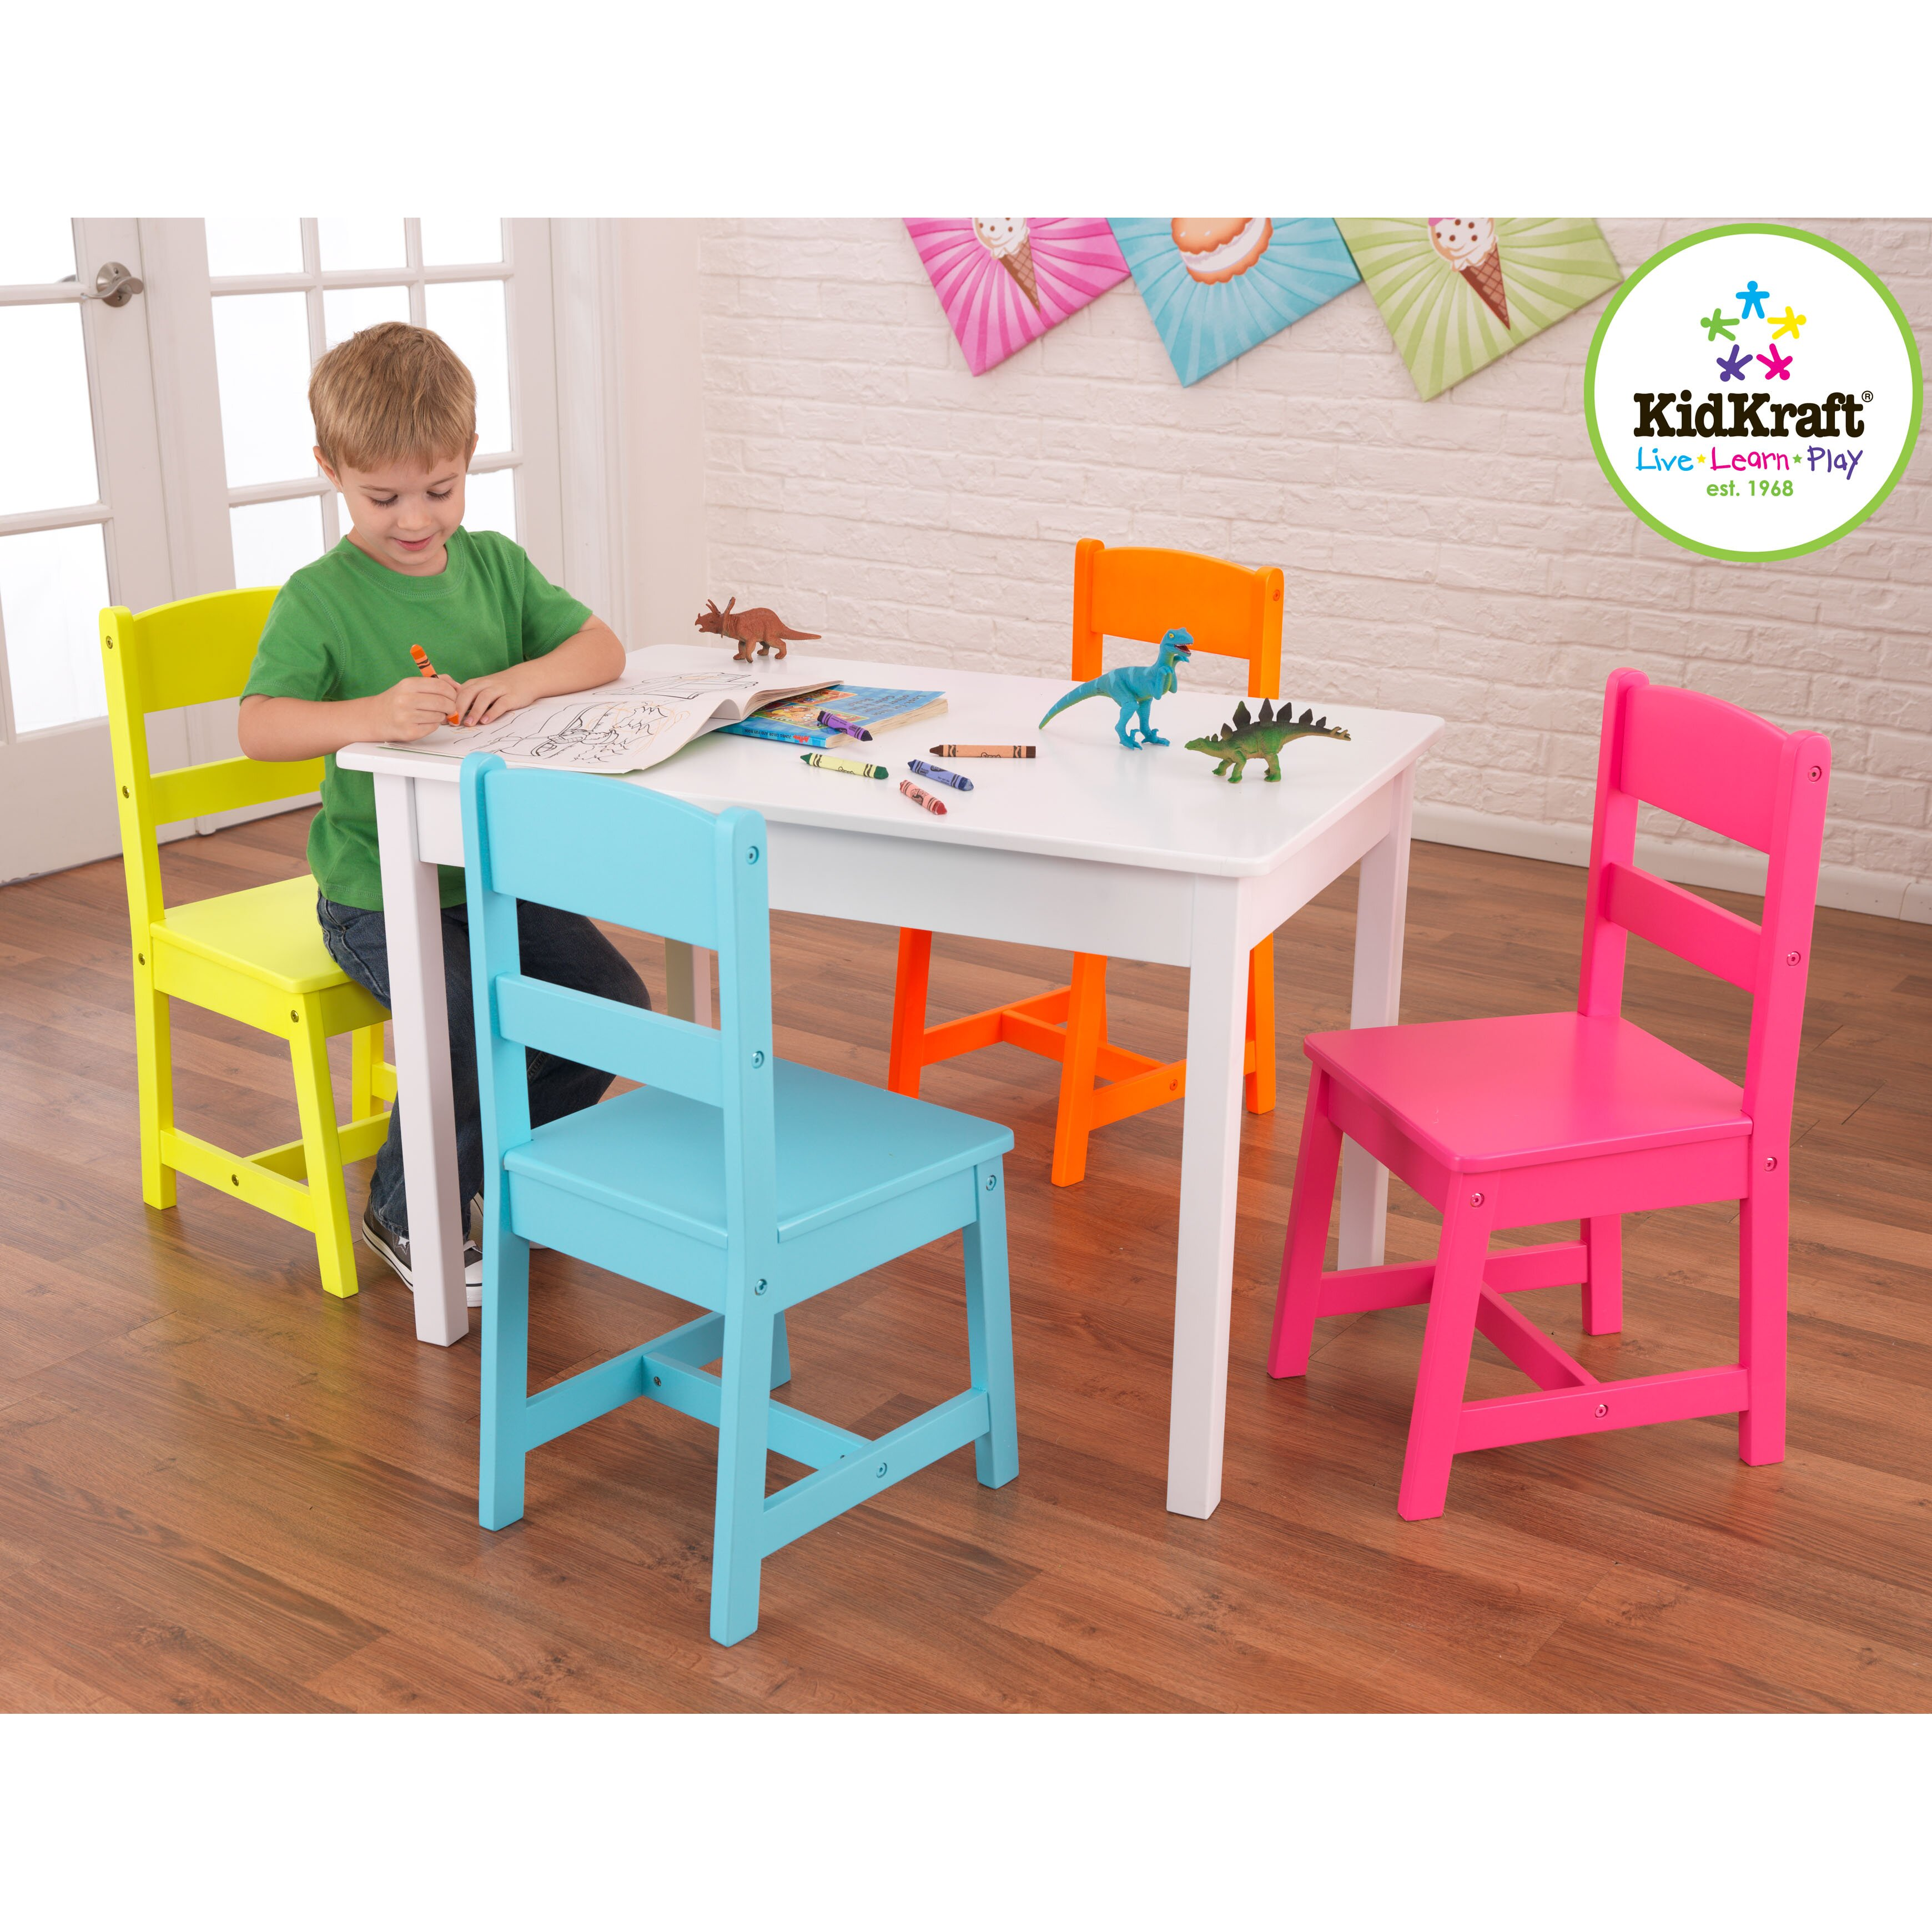 Awesome Kidkraft Table and Chair Set Chairs and Sofa Ideas